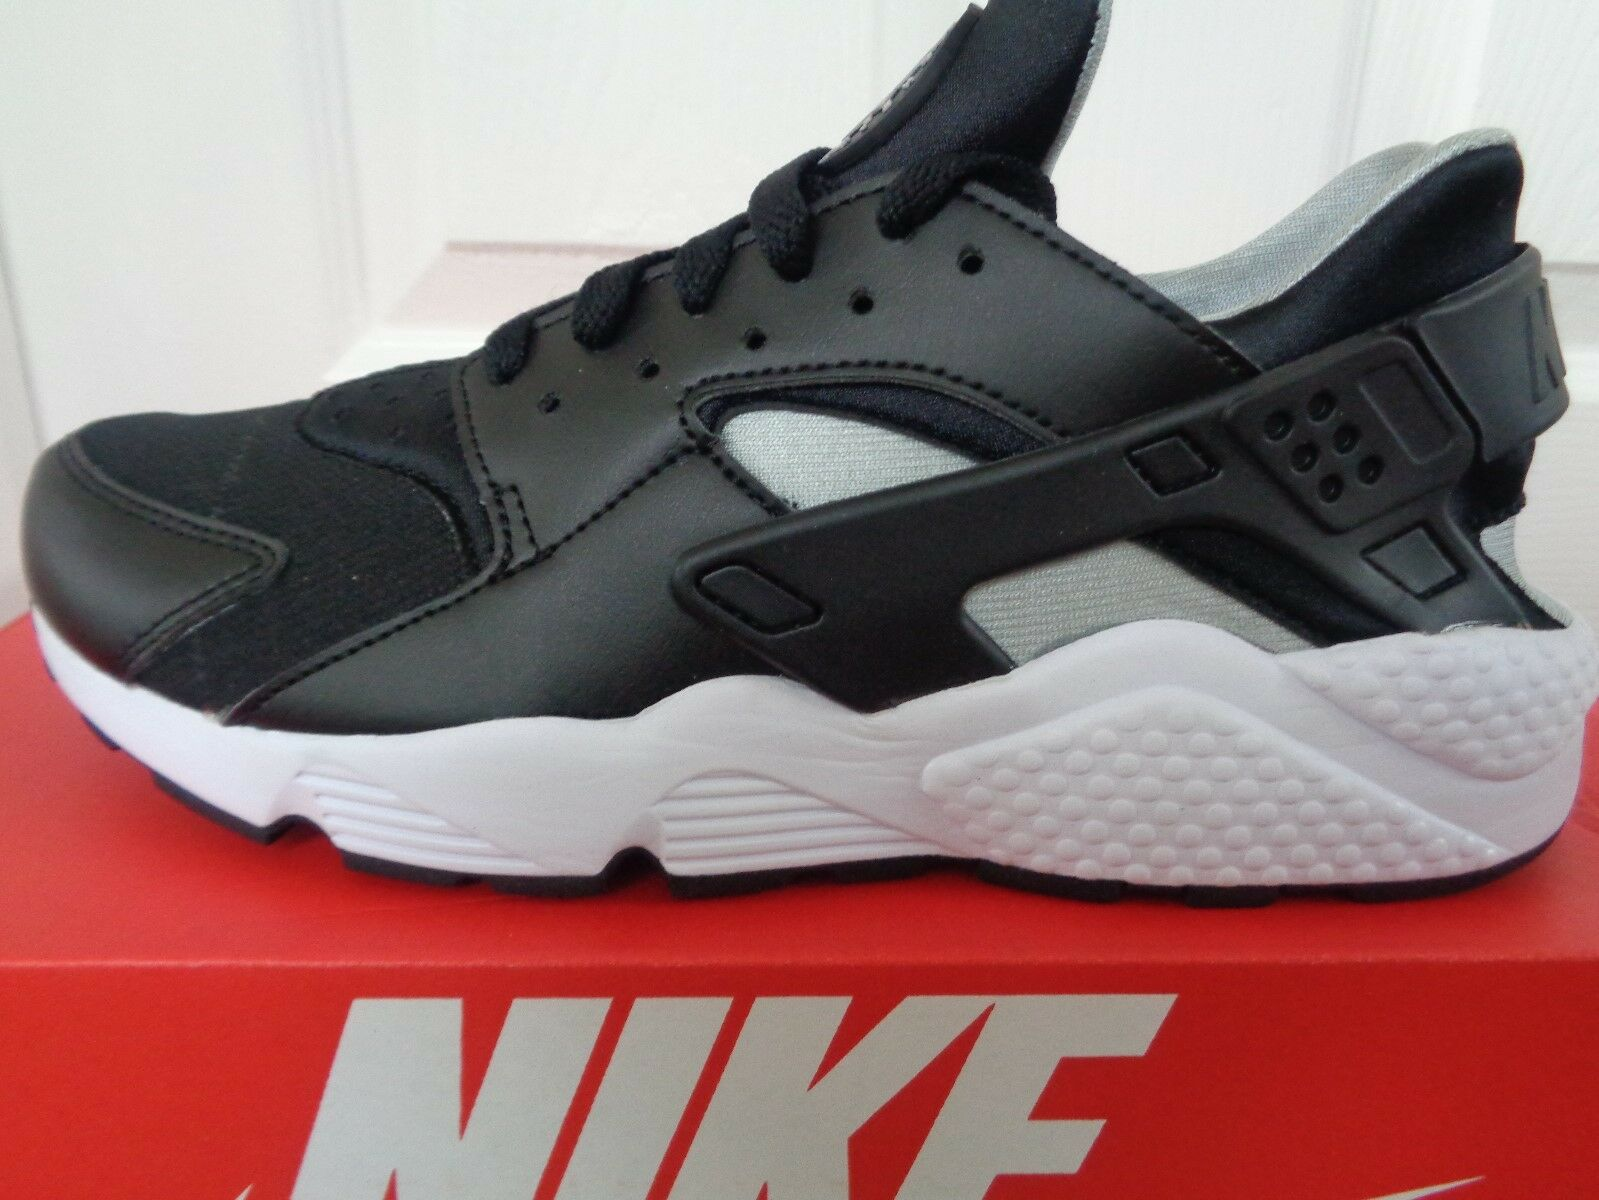 Nike Air Huarache homme  trainers sneakers 318429 029 uk 7.5 eu 42 us 8.5 NEW+BOX